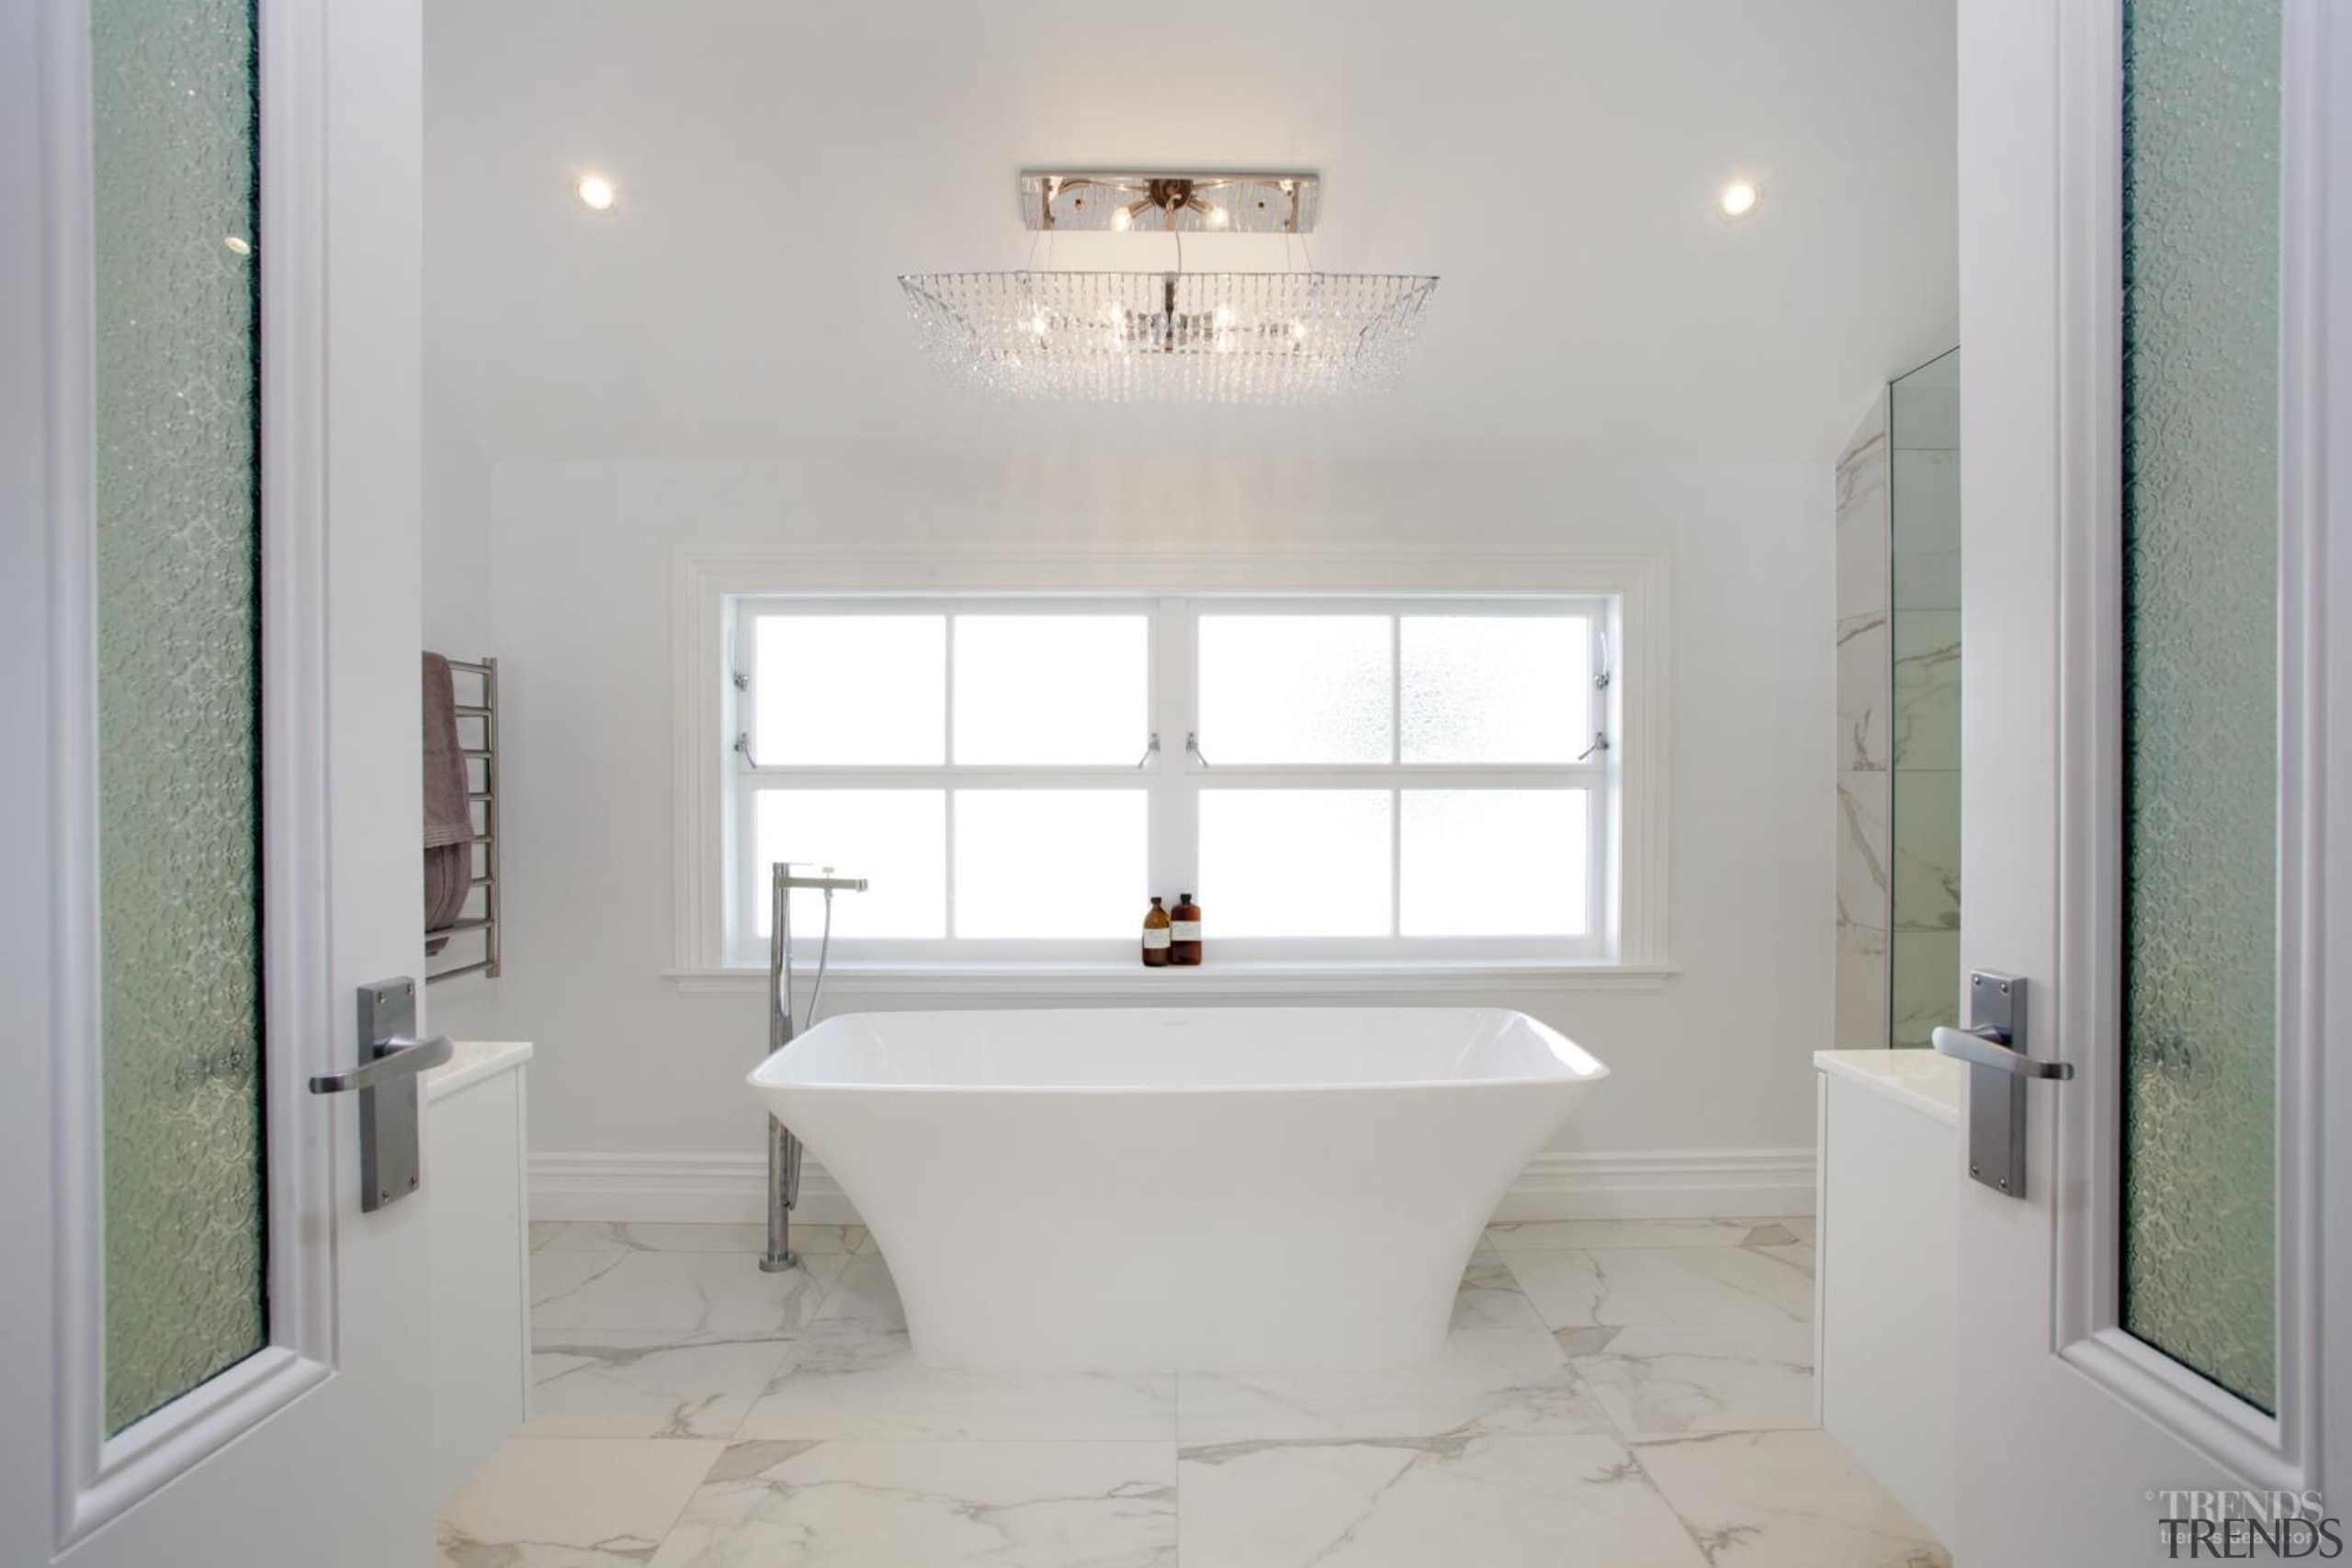 The master bathroom to the rear of this bathroom, ceiling, daylighting, estate, floor, home, interior design, plumbing fixture, property, real estate, room, sink, tile, window, gray